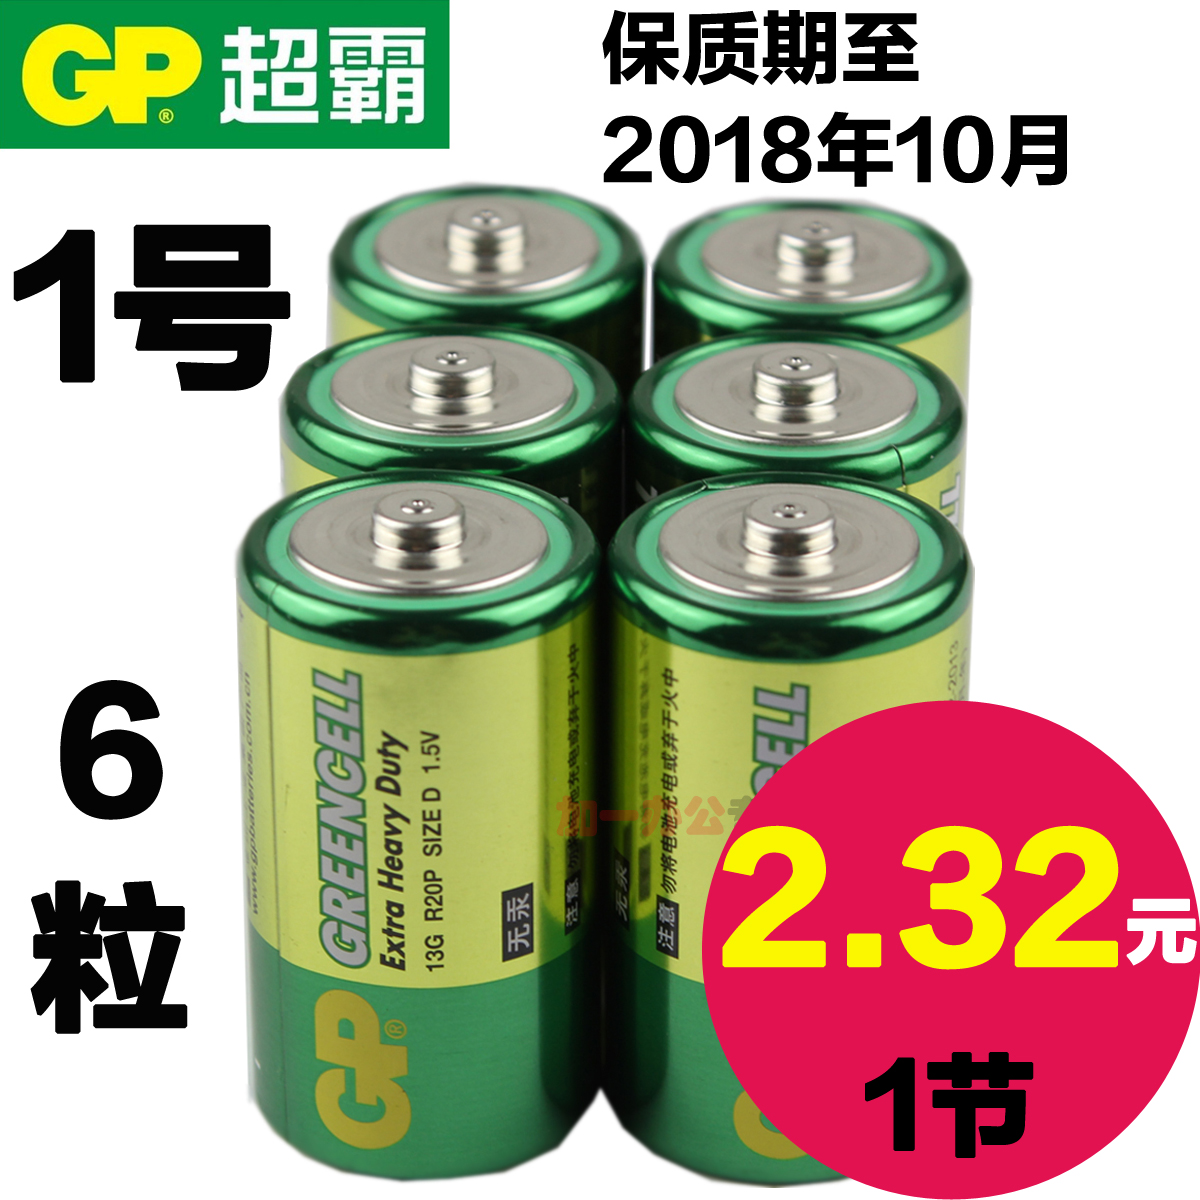 Gp super battery on 1 section 6 of the coal gas stove heater many provinces shipping dry a large flashlight batteries